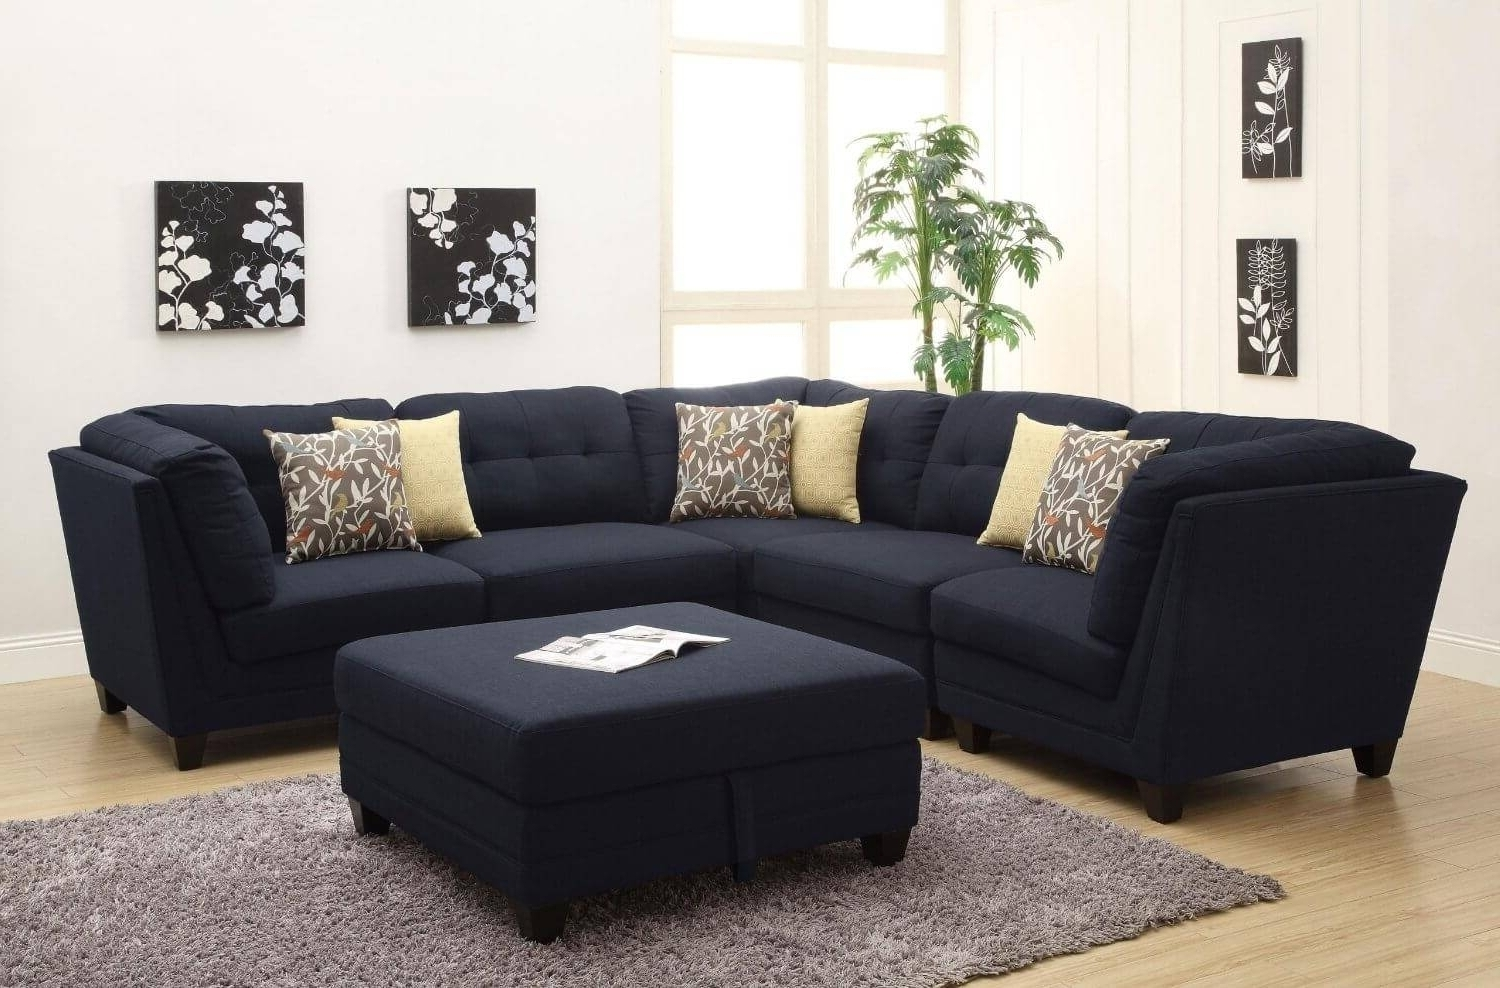 2019 Latest Sectional Sofas Under 600 | Sofa Ideas